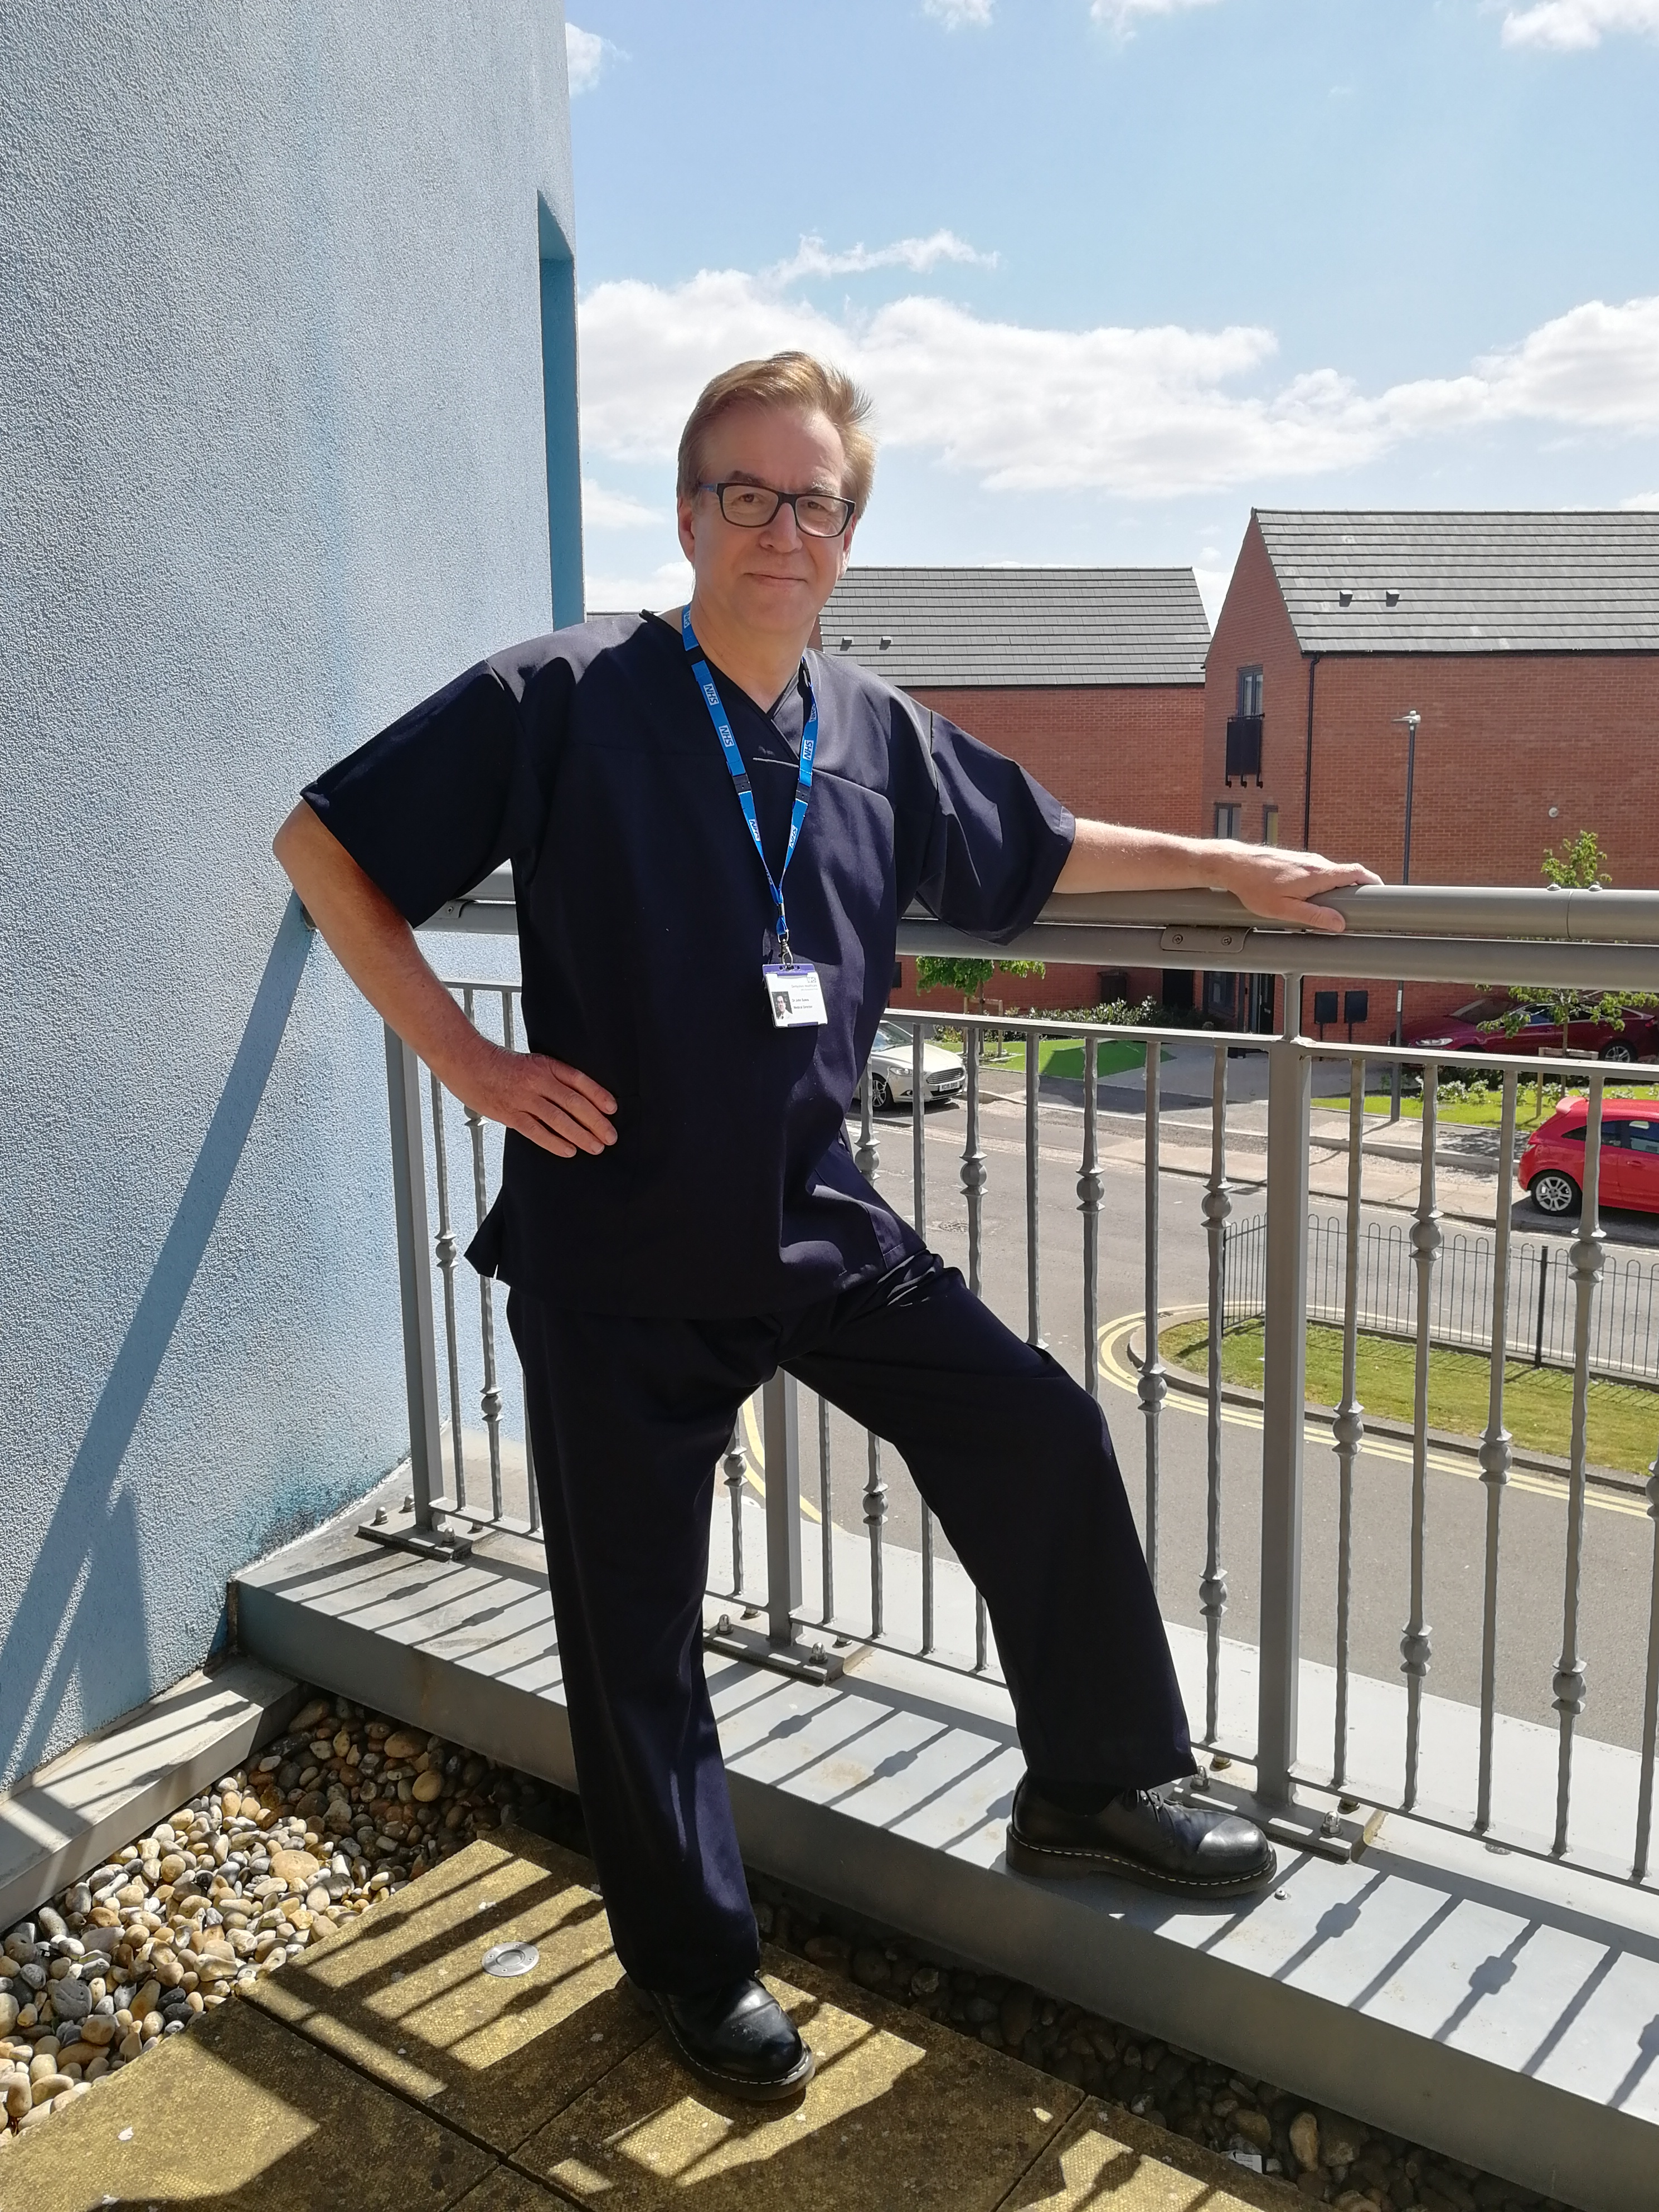 Derbyshire healthcare staff sport stylish new scrubs thanks to Derbyshire manufacturer